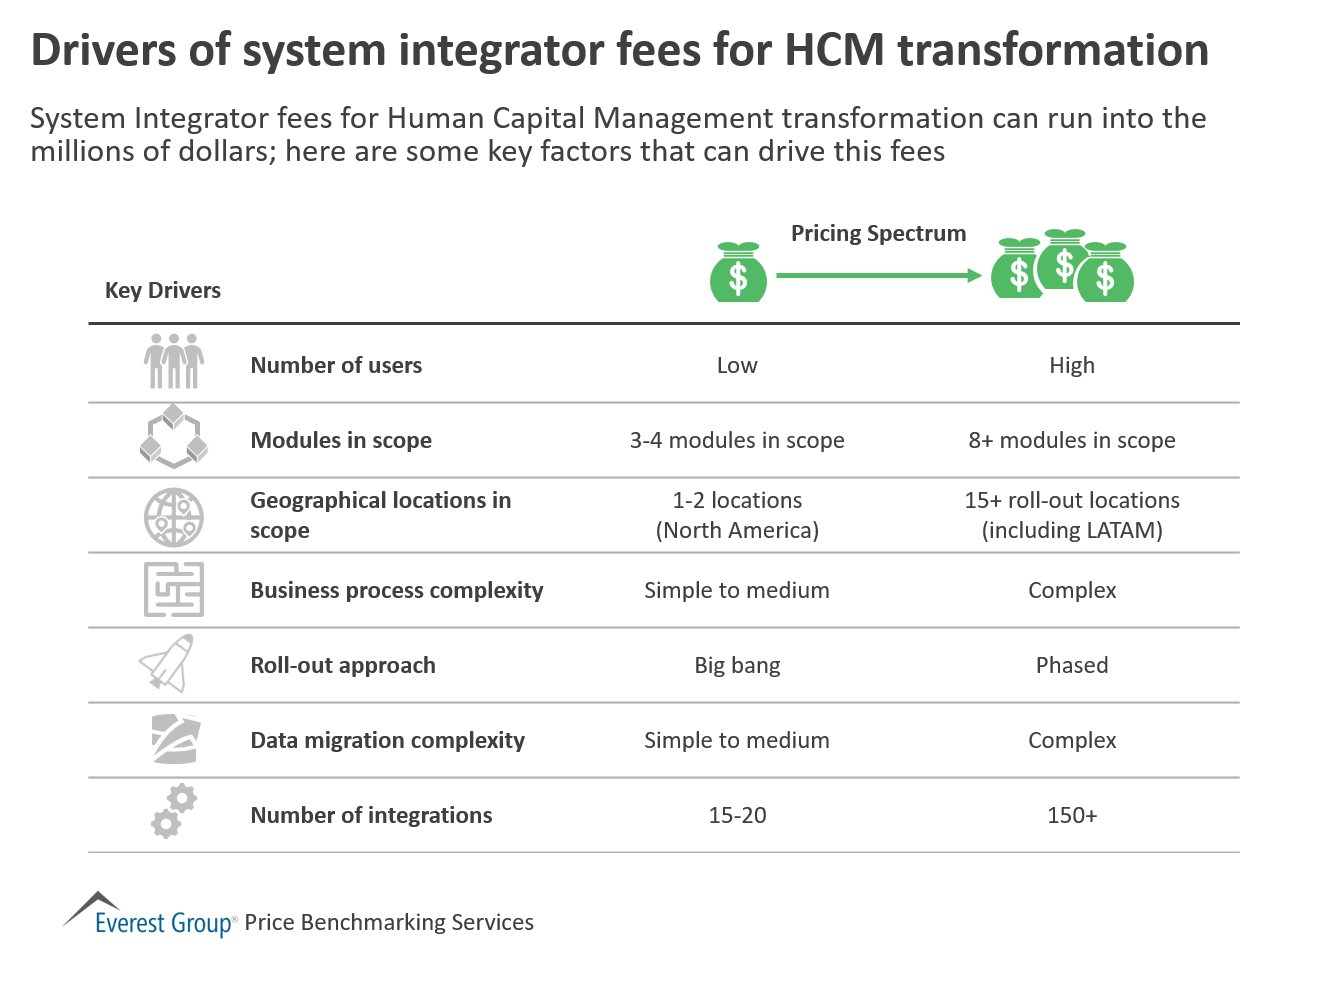 Drivers of SI fees for HCM